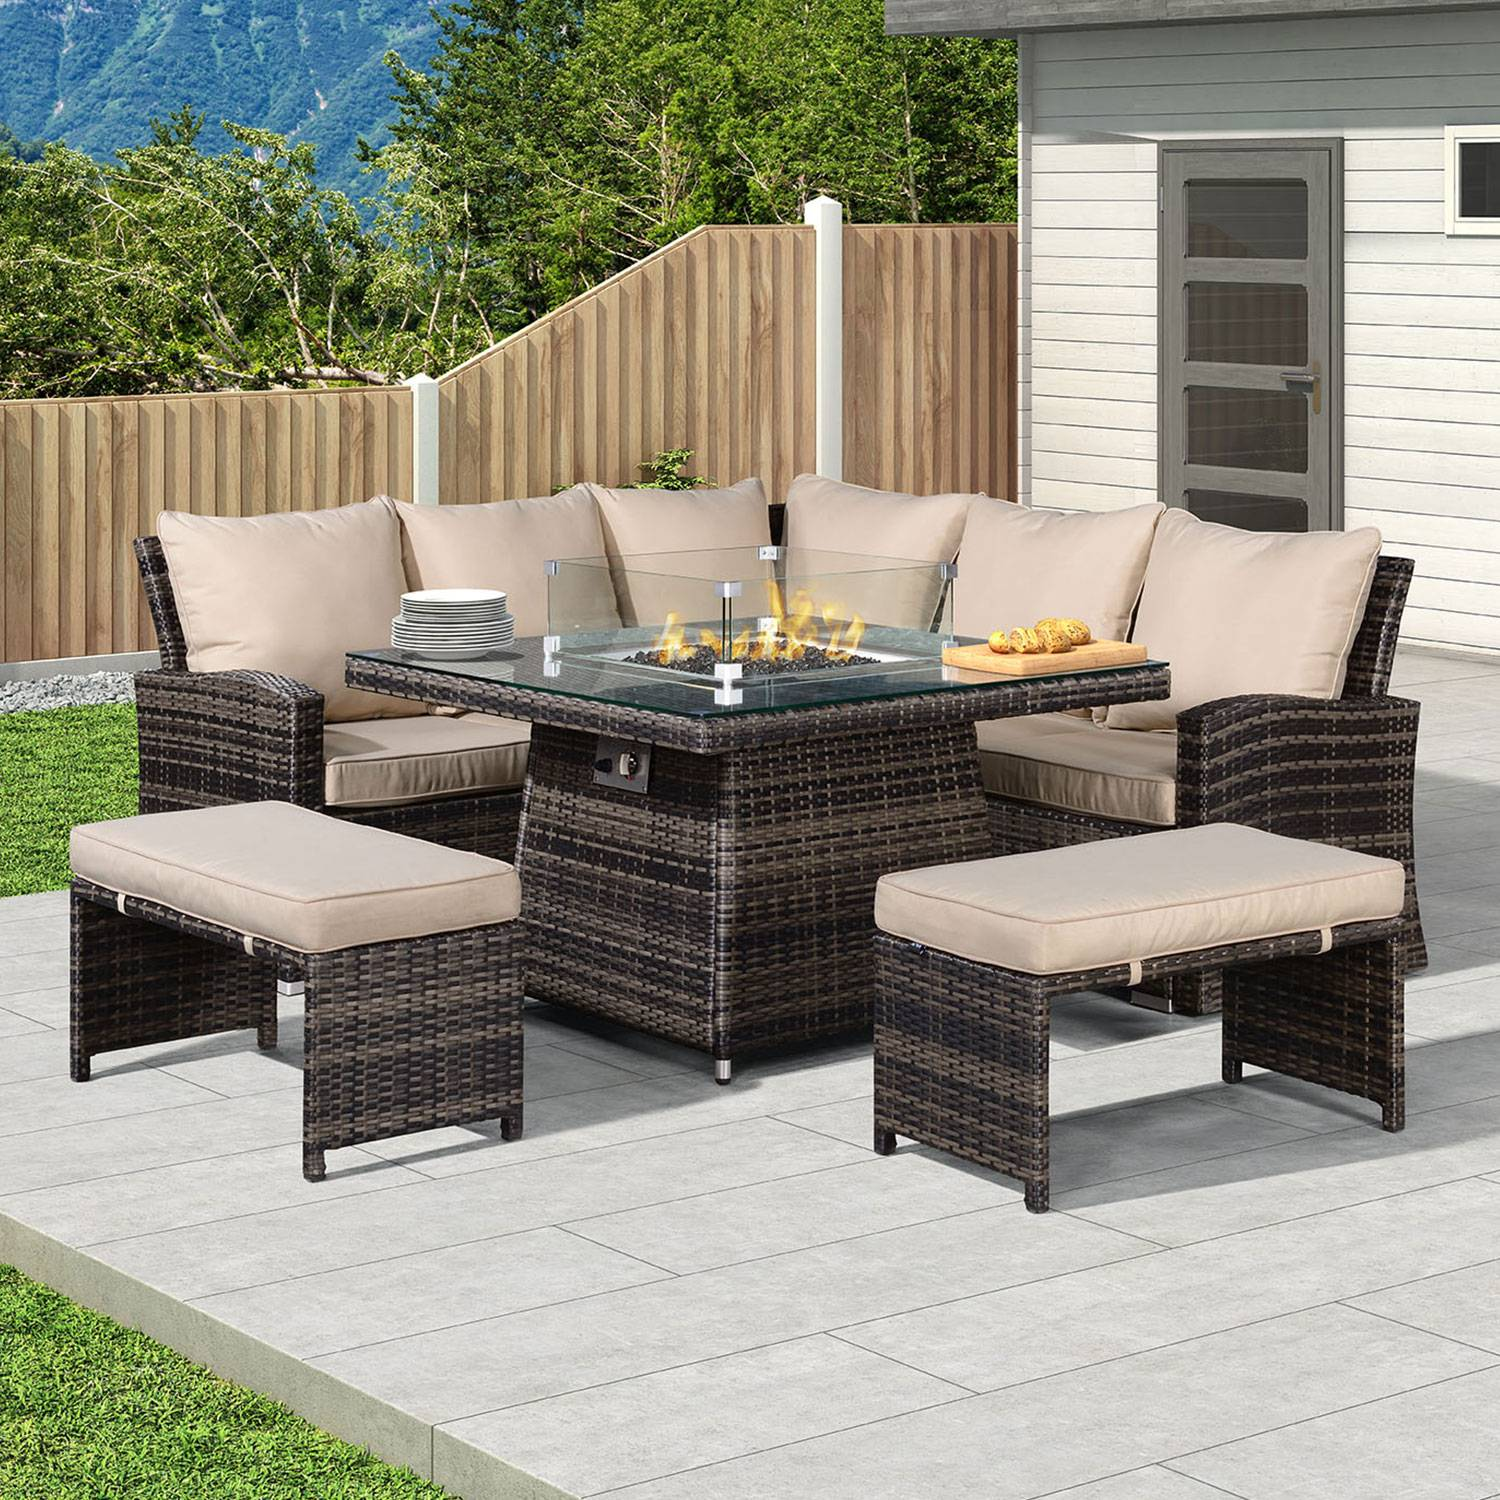 Oakworld Alfresco Cambridge Compact Corner Dining Set with Fire Pit Table - Brown